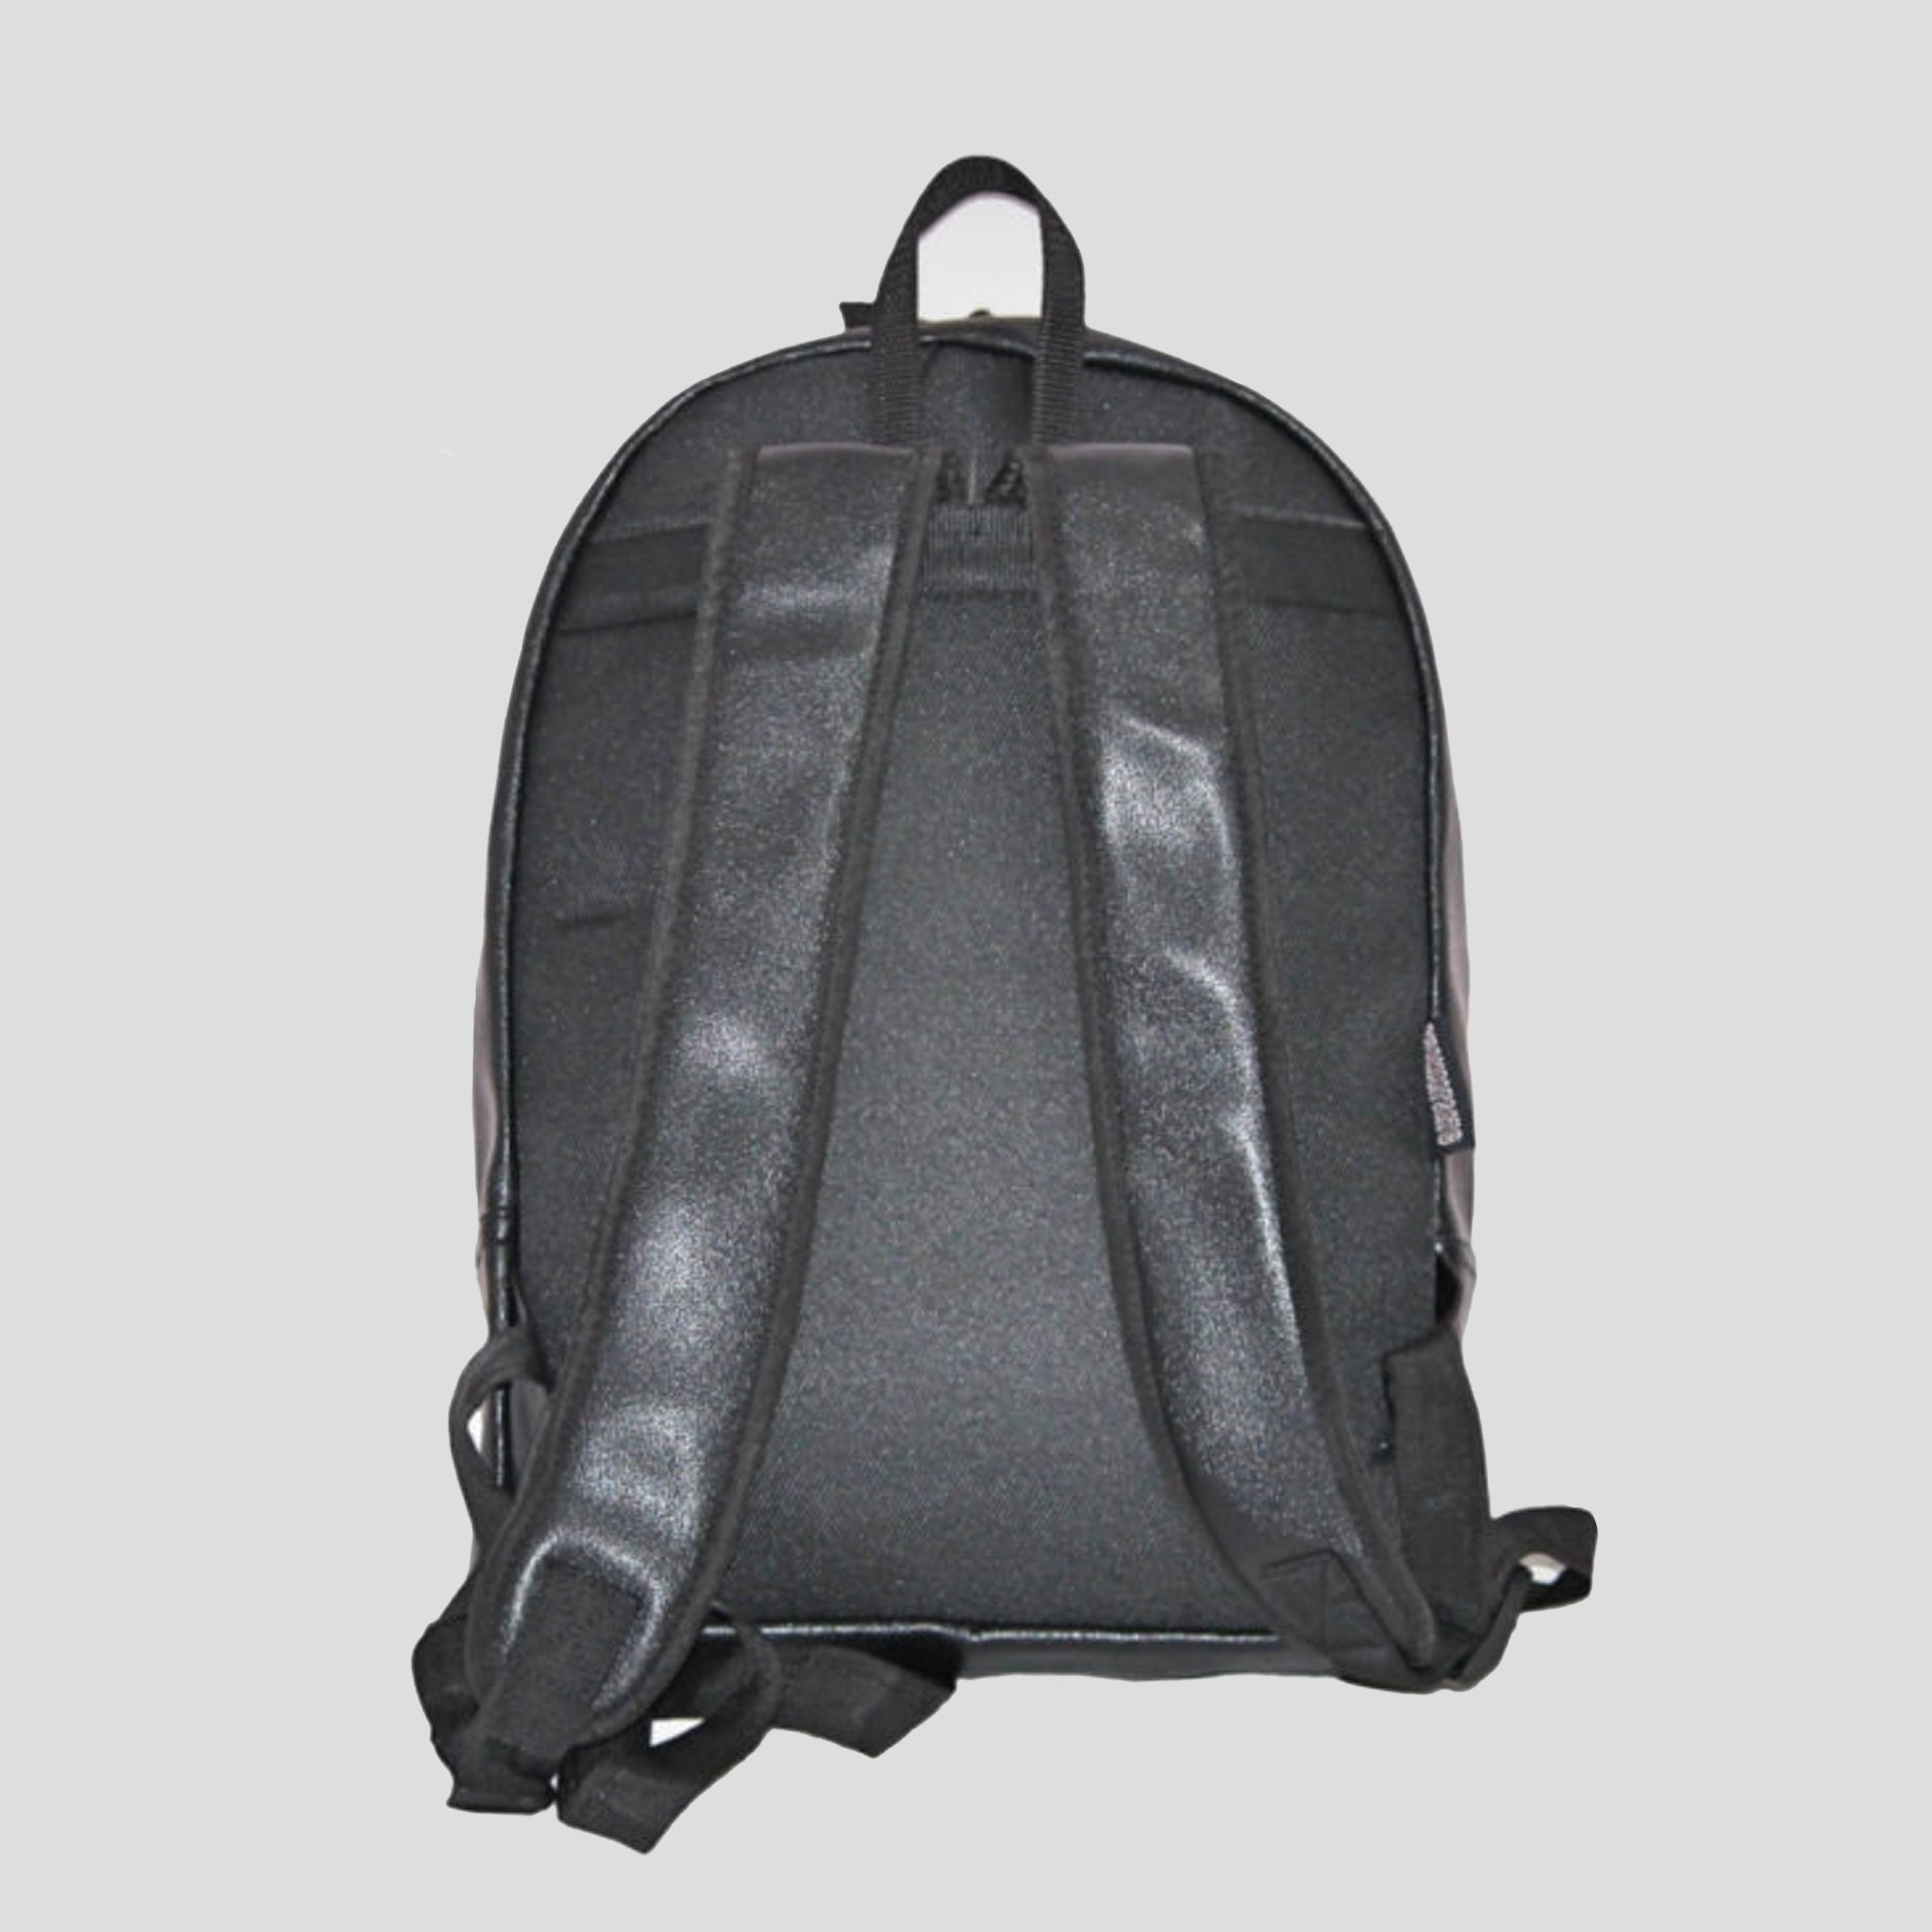 Comfort PU leather Backpack